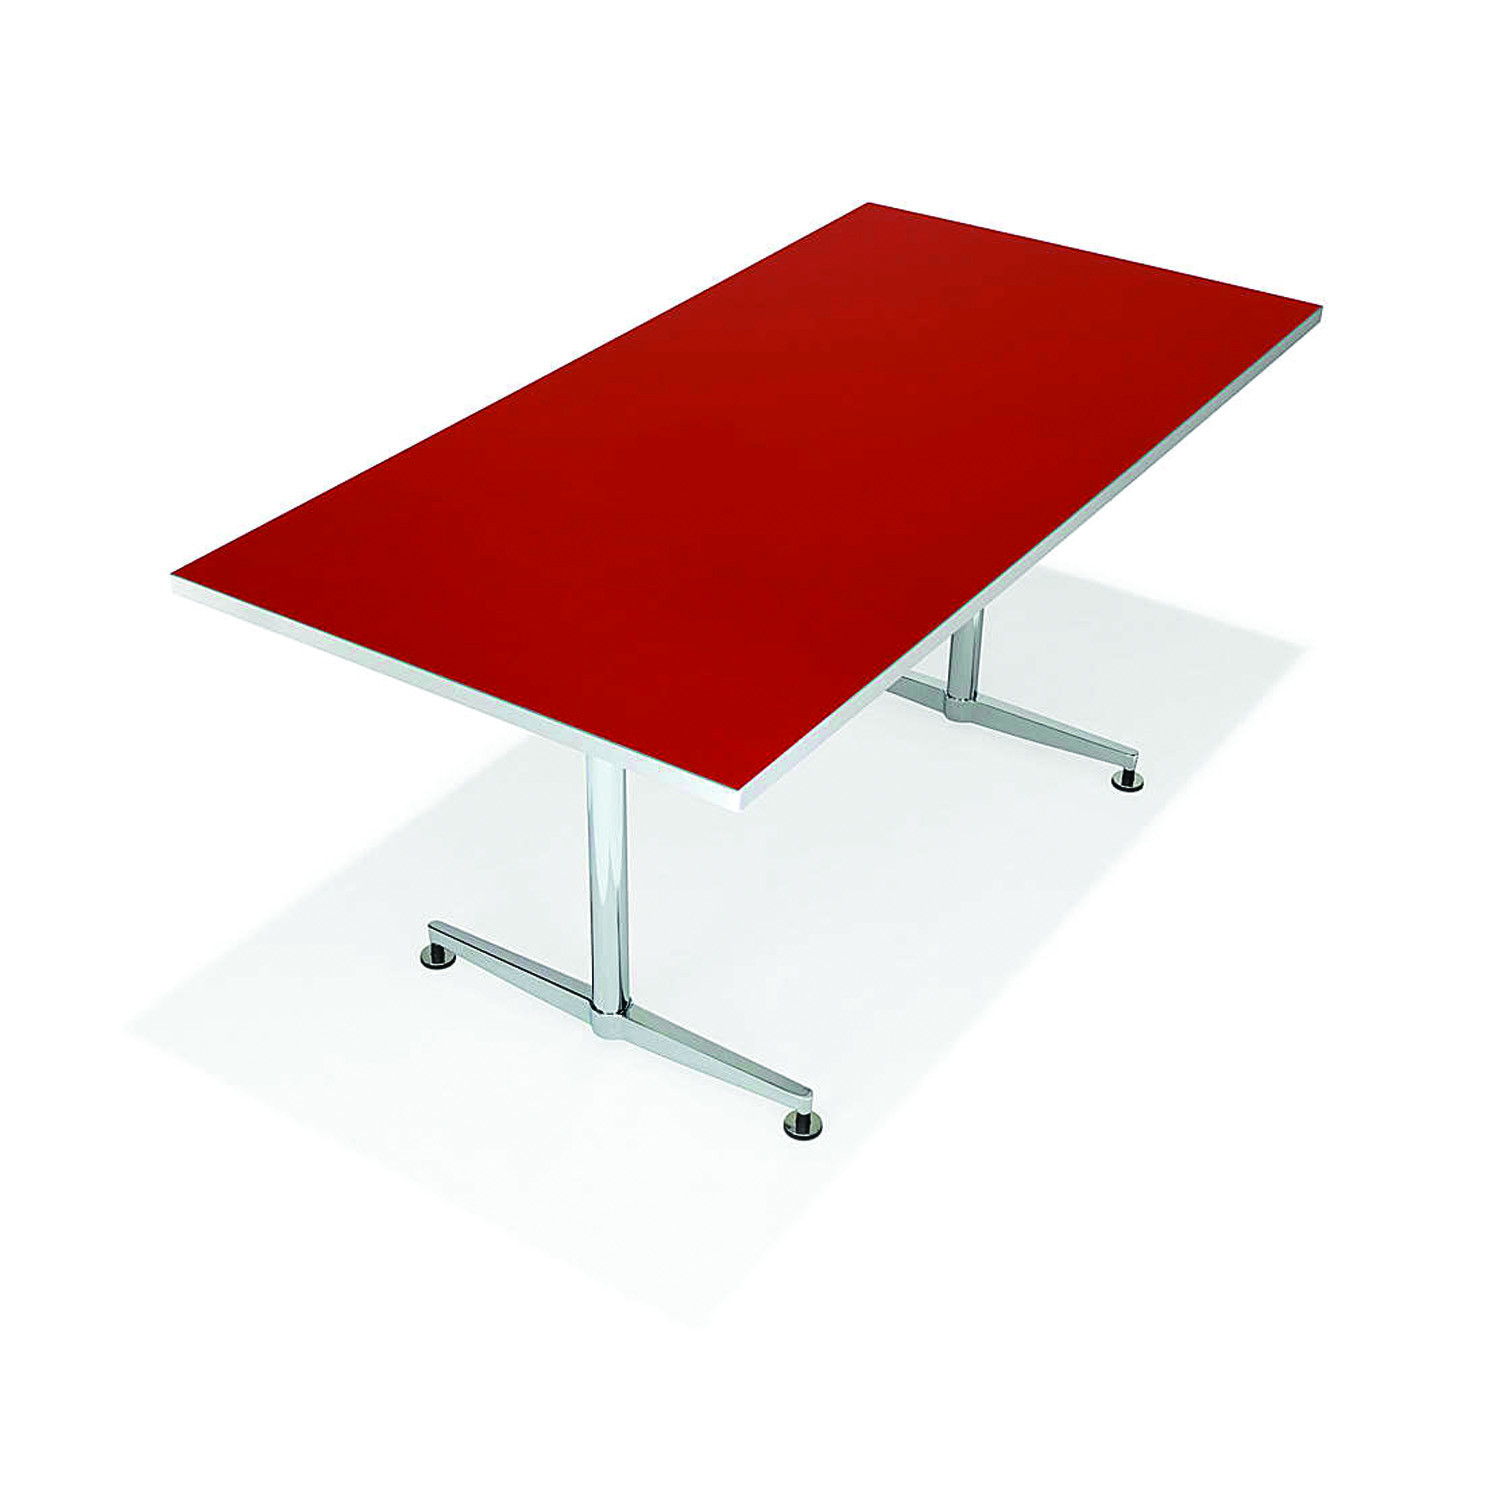 6000 San_Siro Rectangular Meeting Table in red